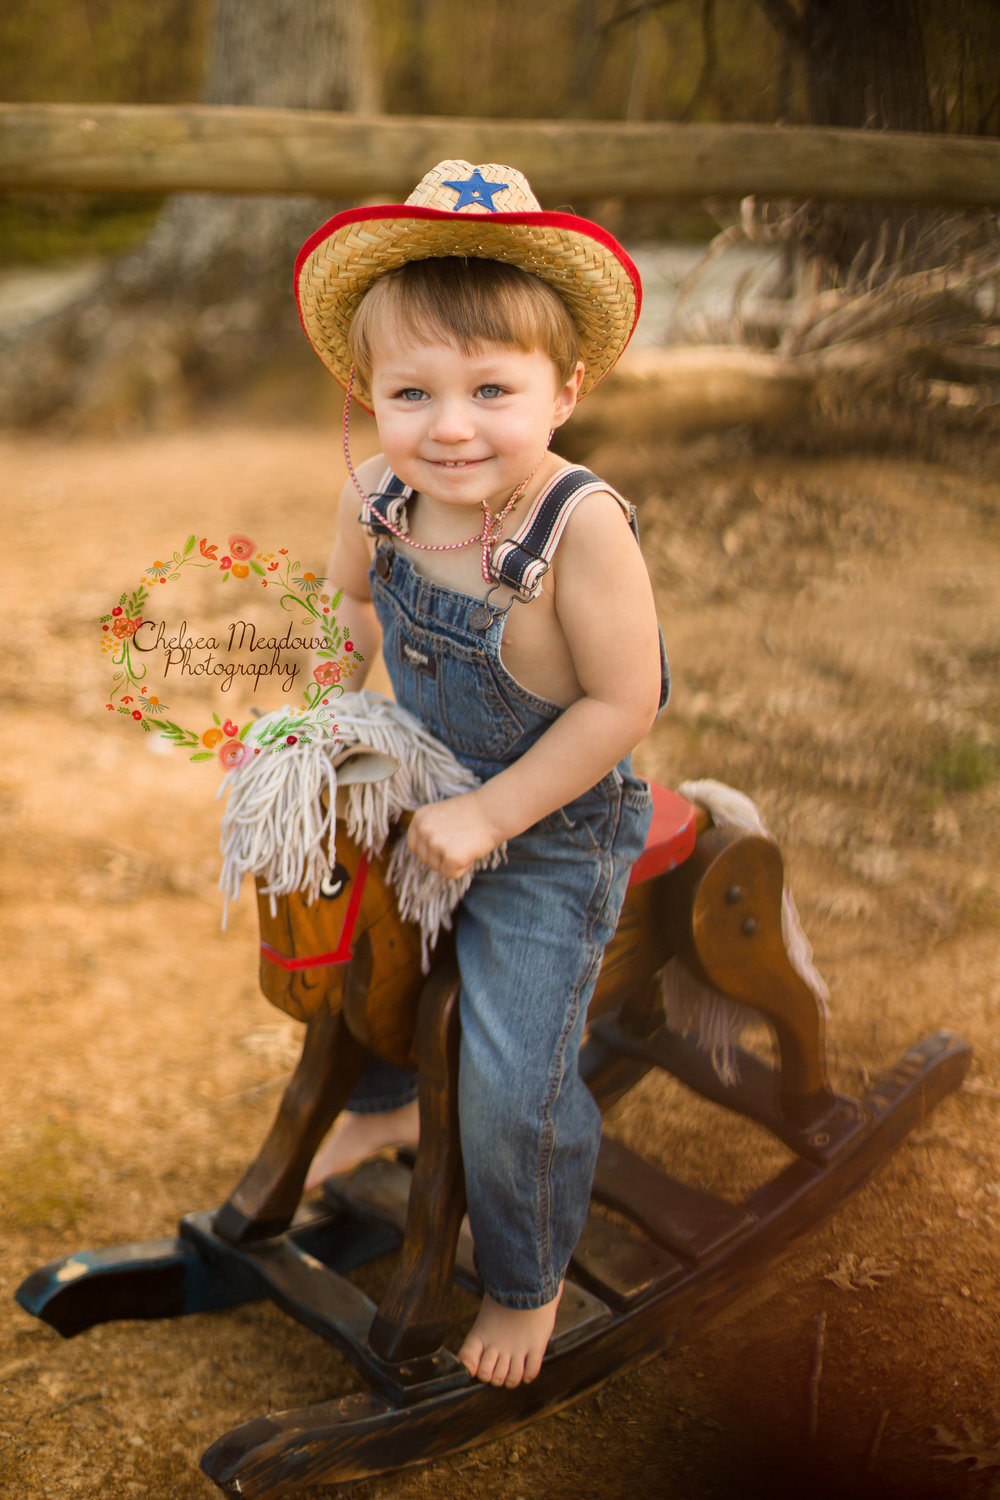 Grayson Cowboy Photos - Nashville family Photographer - Chelsea Meadows Photography (45)_edited-2.jpg